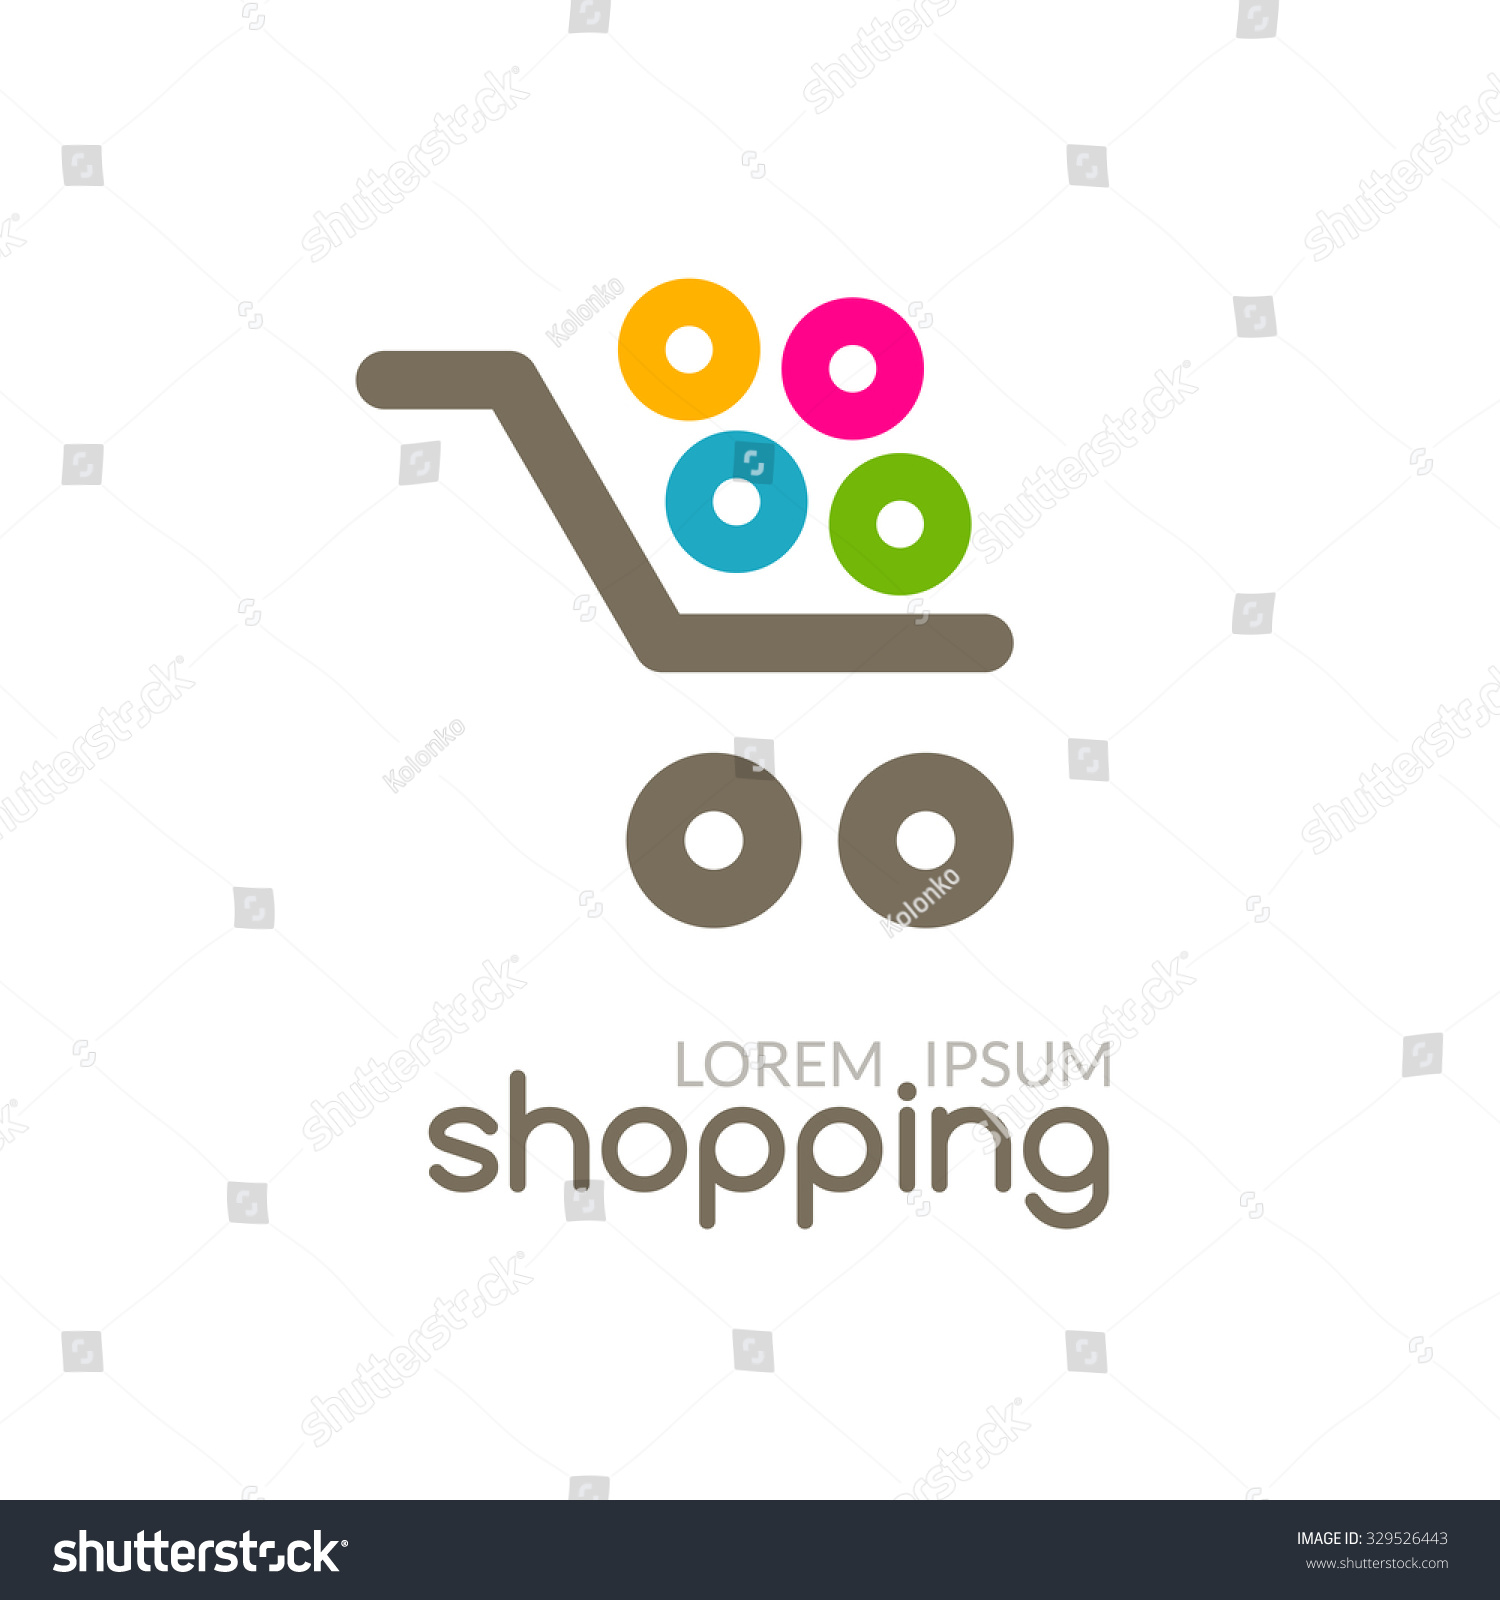 Online shop mall market concept cart stock vector Create a blueprint online